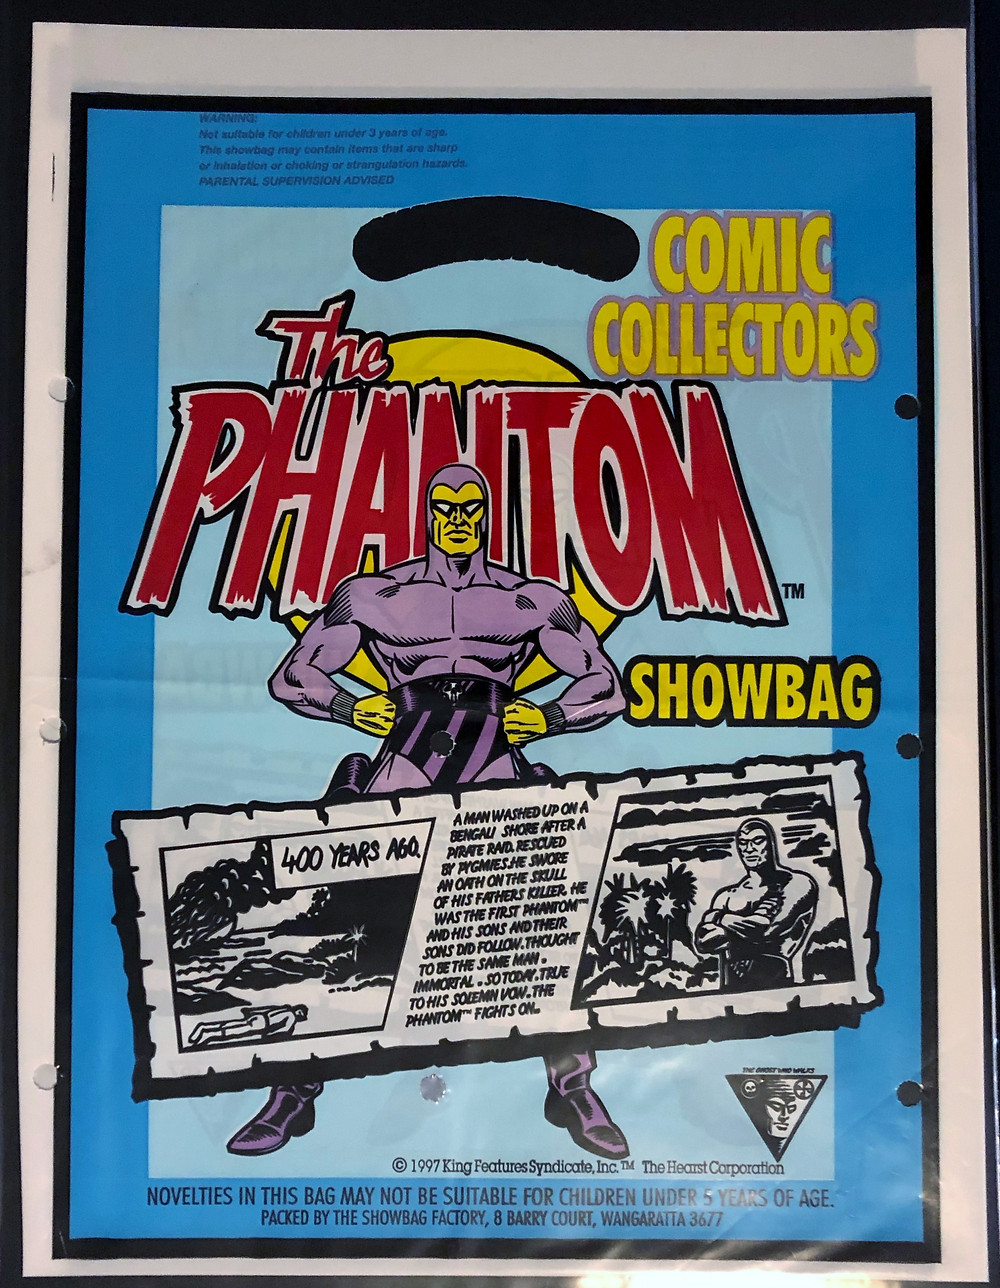 The Phantom Showbag